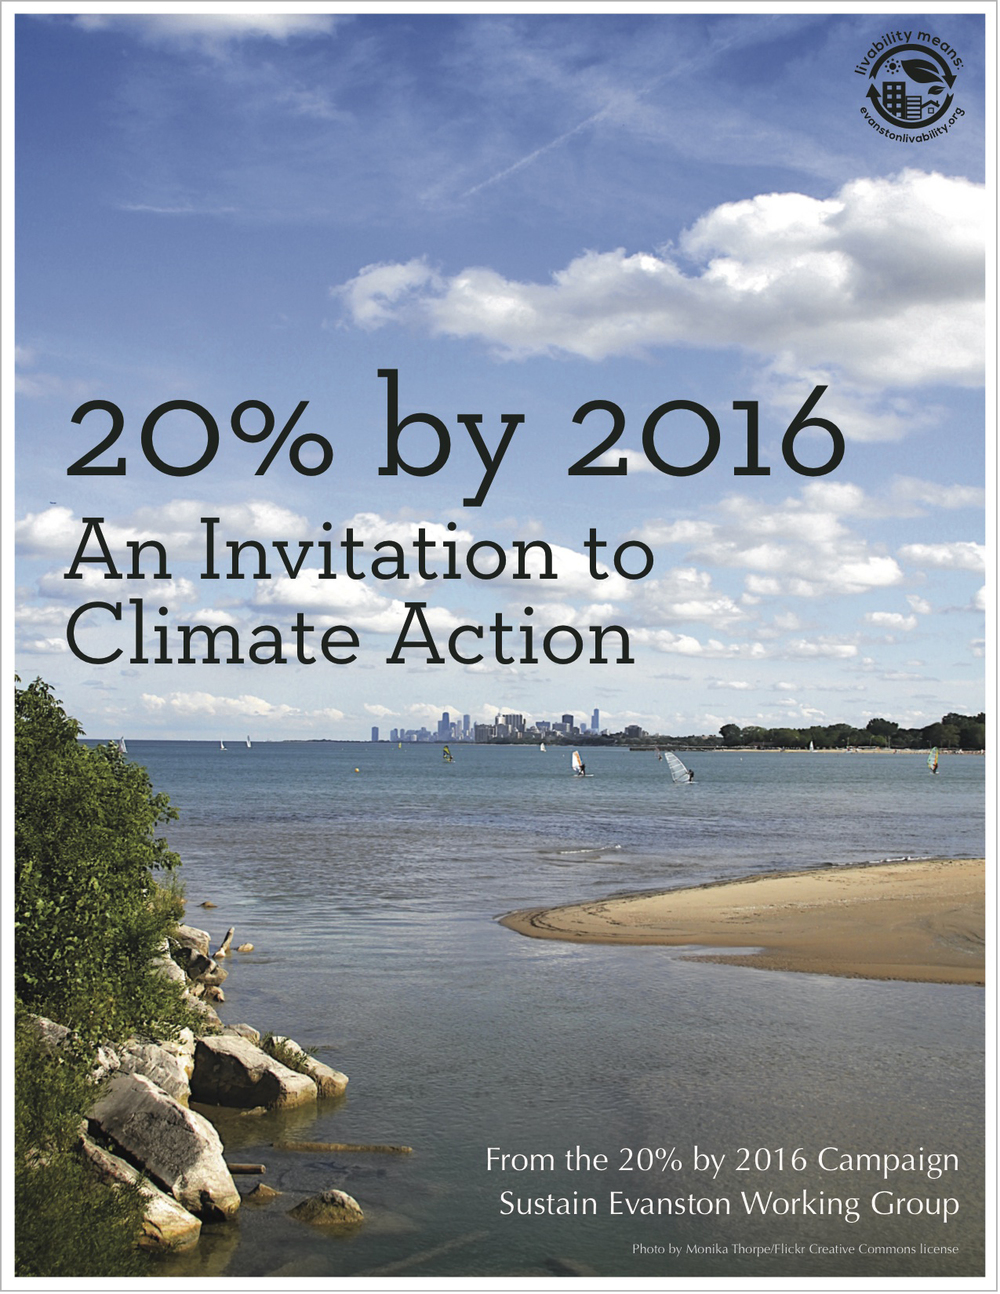 Evanston Invitation to Climate Action 20%.jpg